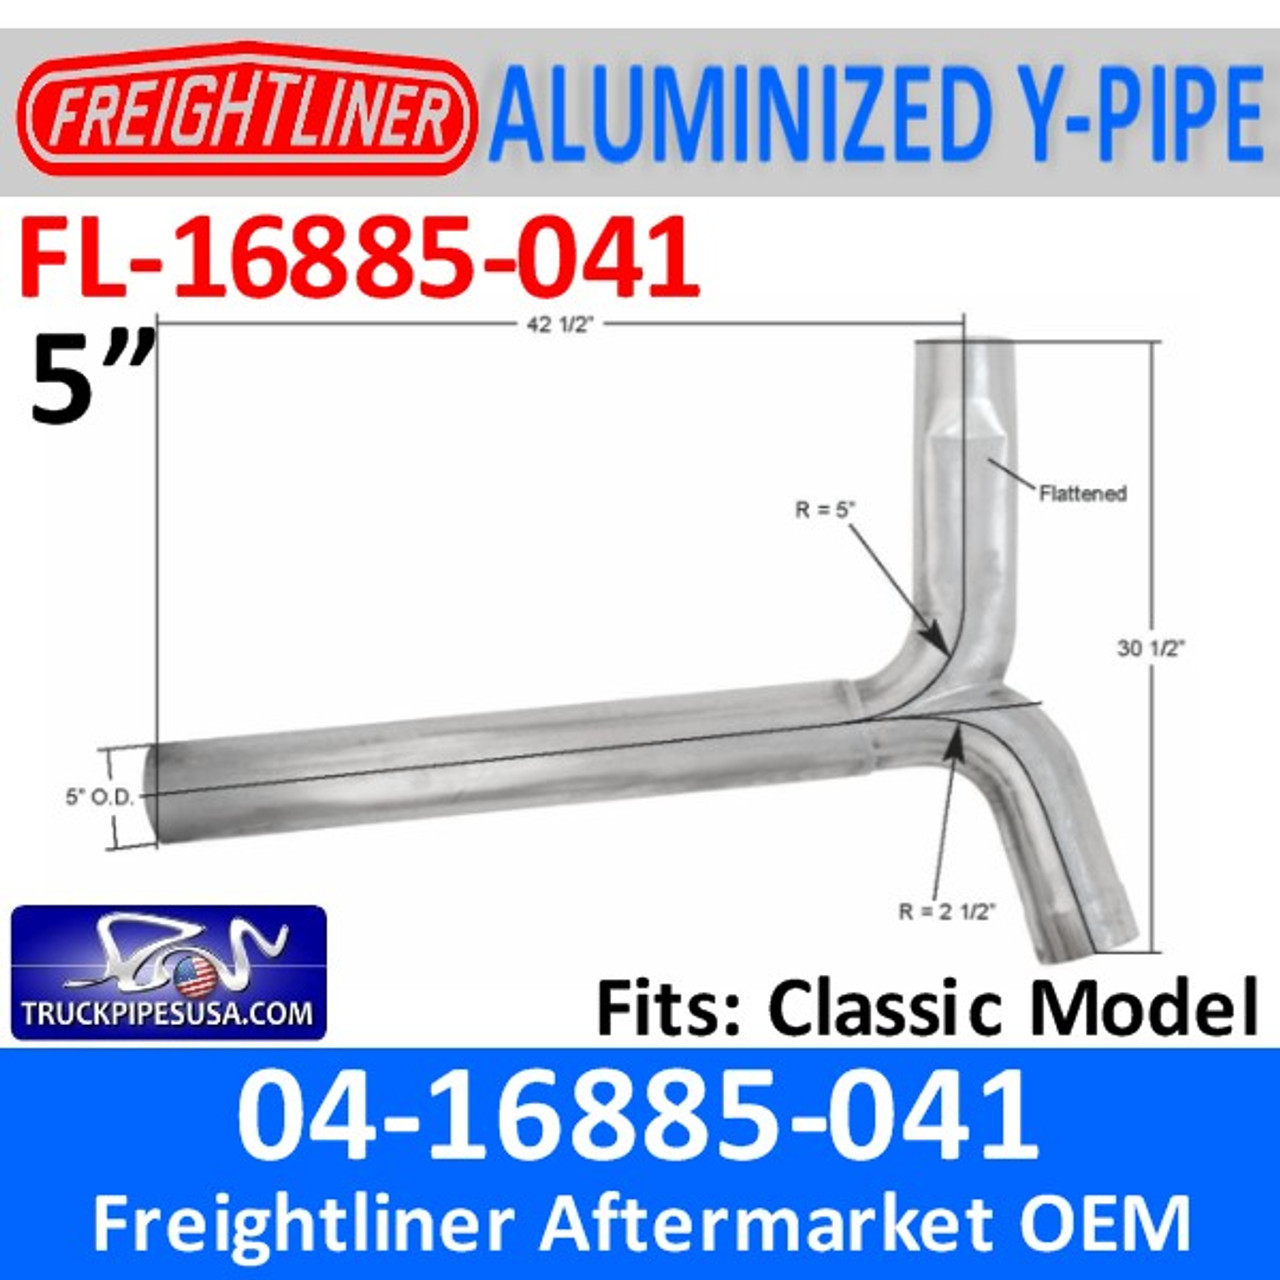 04-16885-041 Freightliner Aluminized Y-Pipe Exhaust FL-16885-041